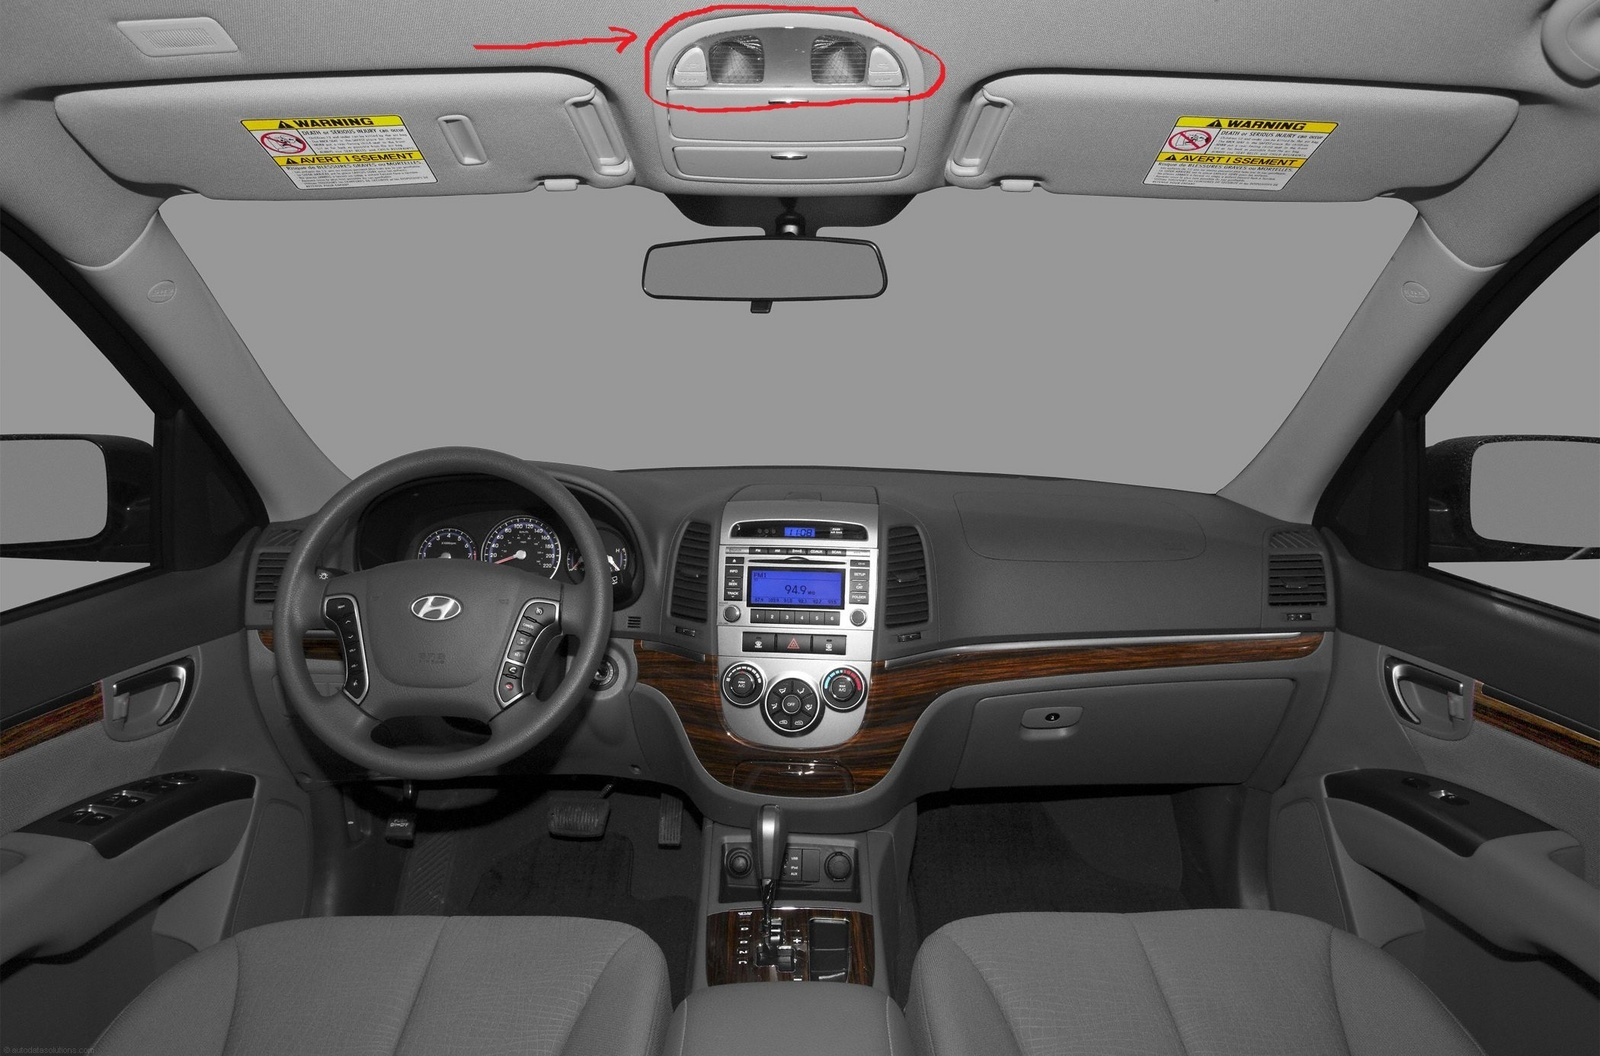 hyundai santa fe questions how do i turn on the interior lights to go on automatically for my. Black Bedroom Furniture Sets. Home Design Ideas